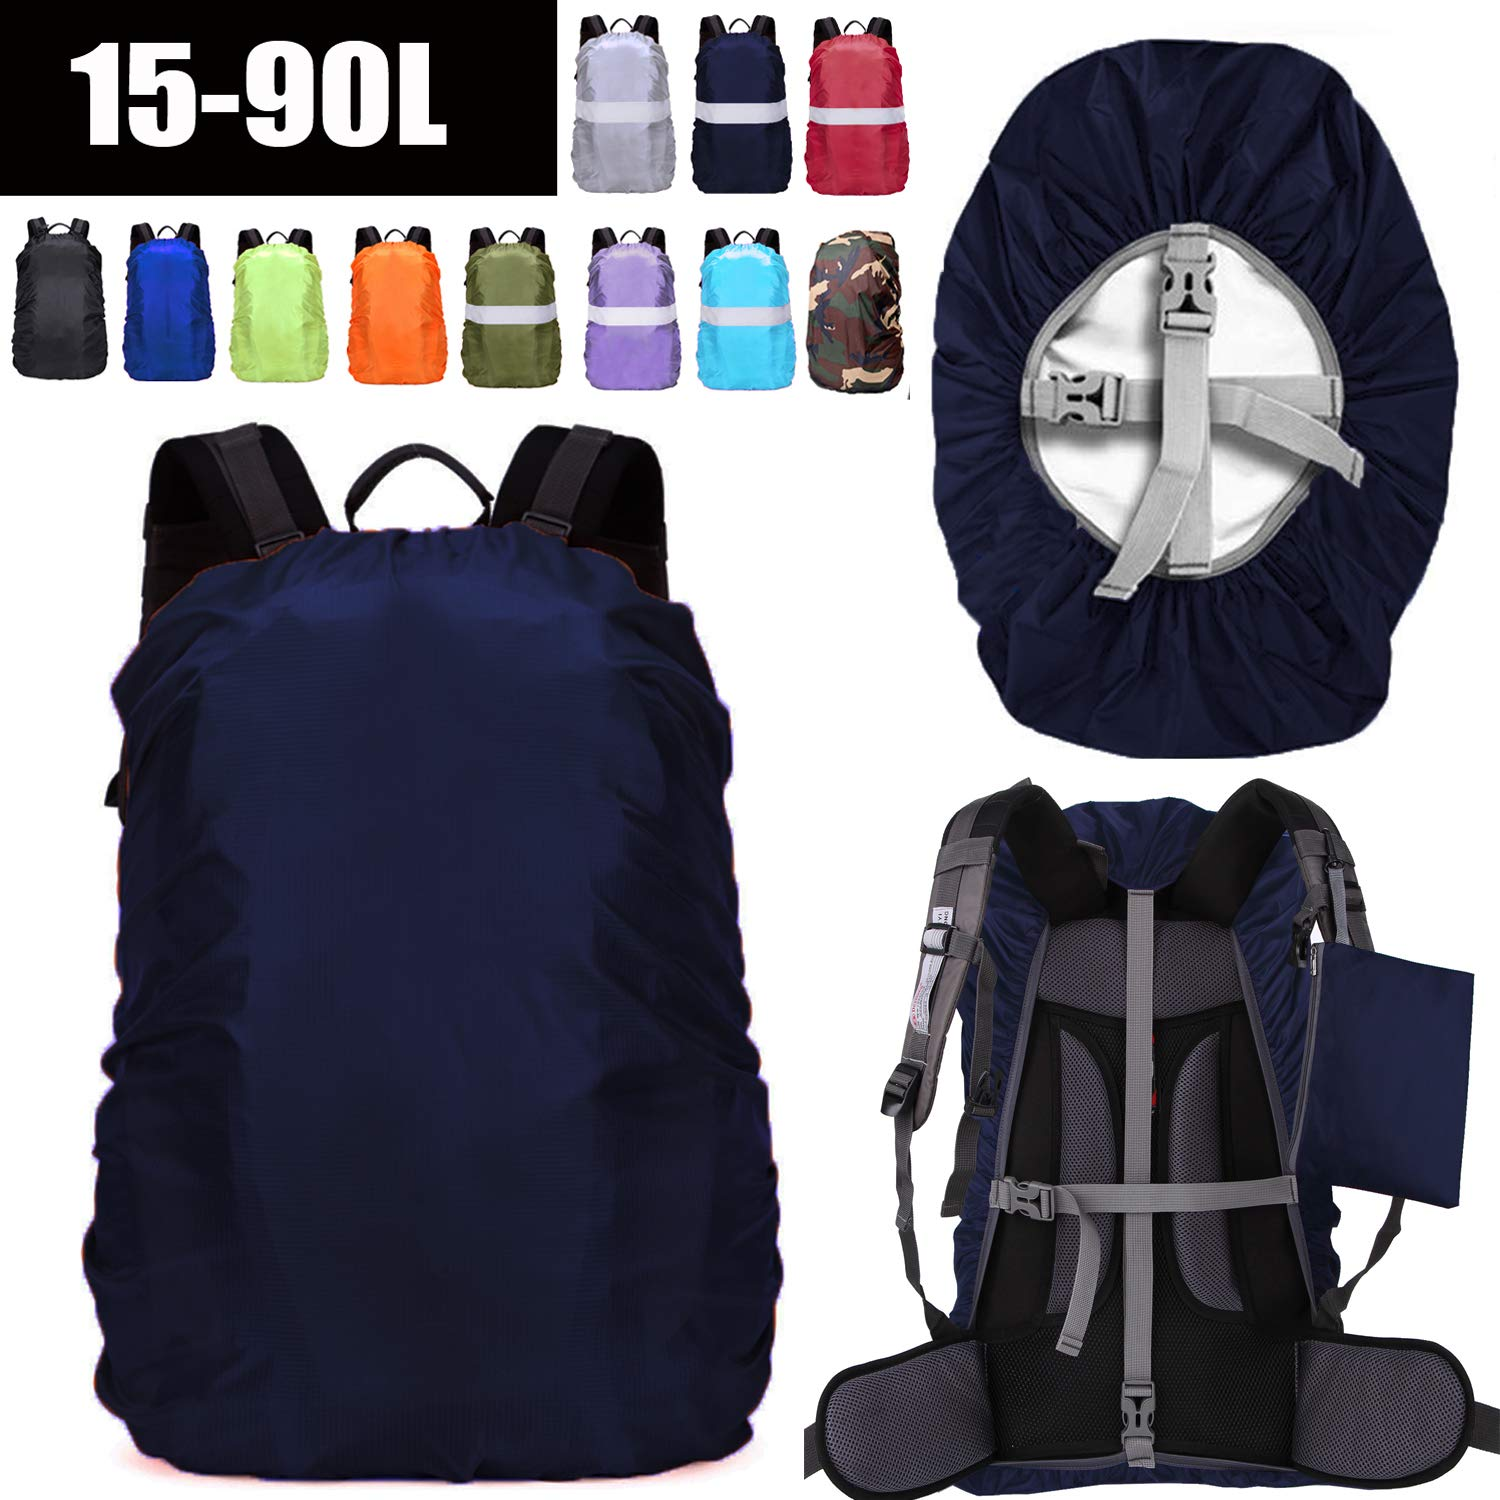 ZM-SPORTS 15-90L Upgraded Waterproof Backpack Rain Cover,with Vertical Adjustable Fixed Strap Avoid to Falling,Gift with Portable Storage Pack (Midnight Blue, 2XL(for 65-75L Backpack) by ZM-SPORTS